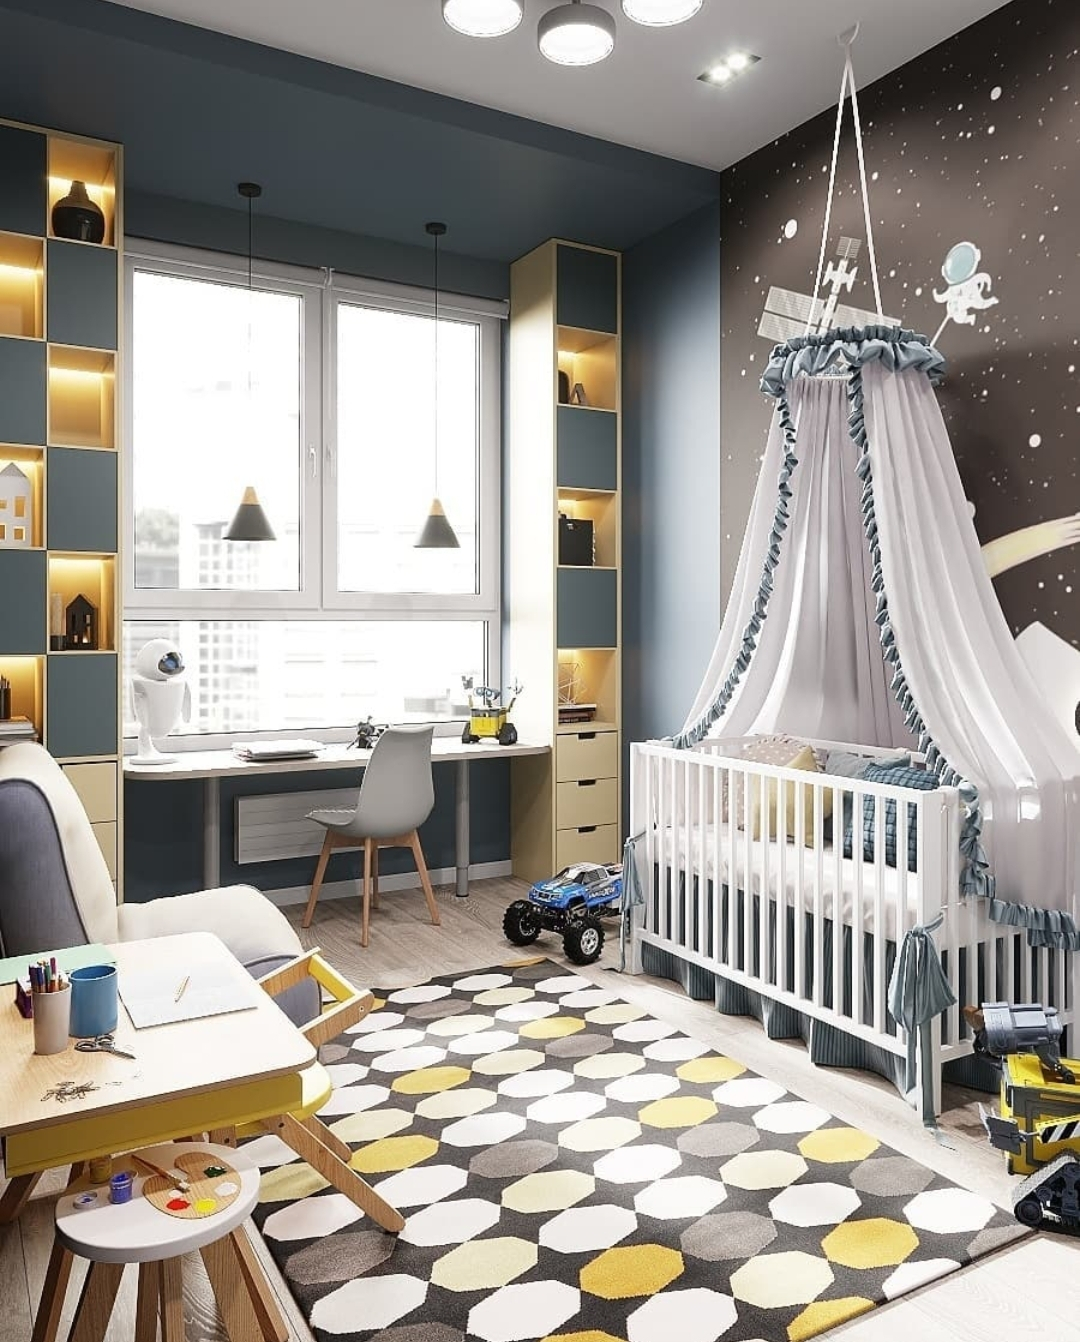 Best Design for Nursery